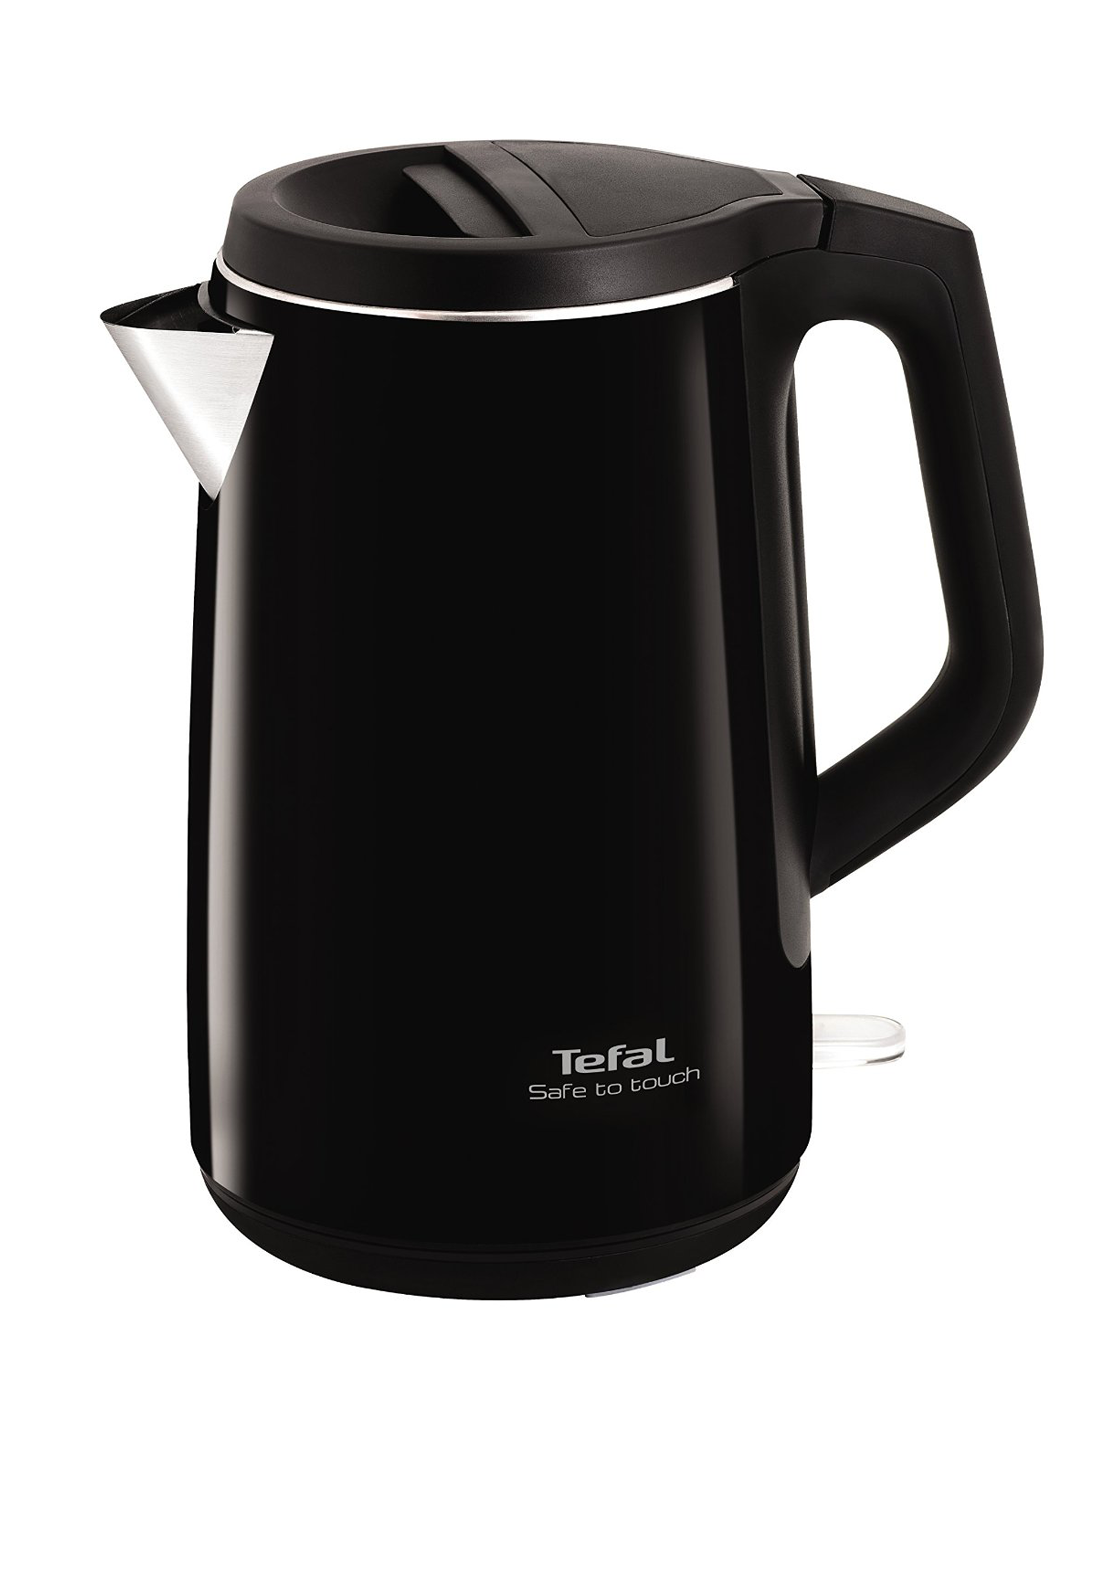 Tefal Safe to Touch Electric Kettle, Black